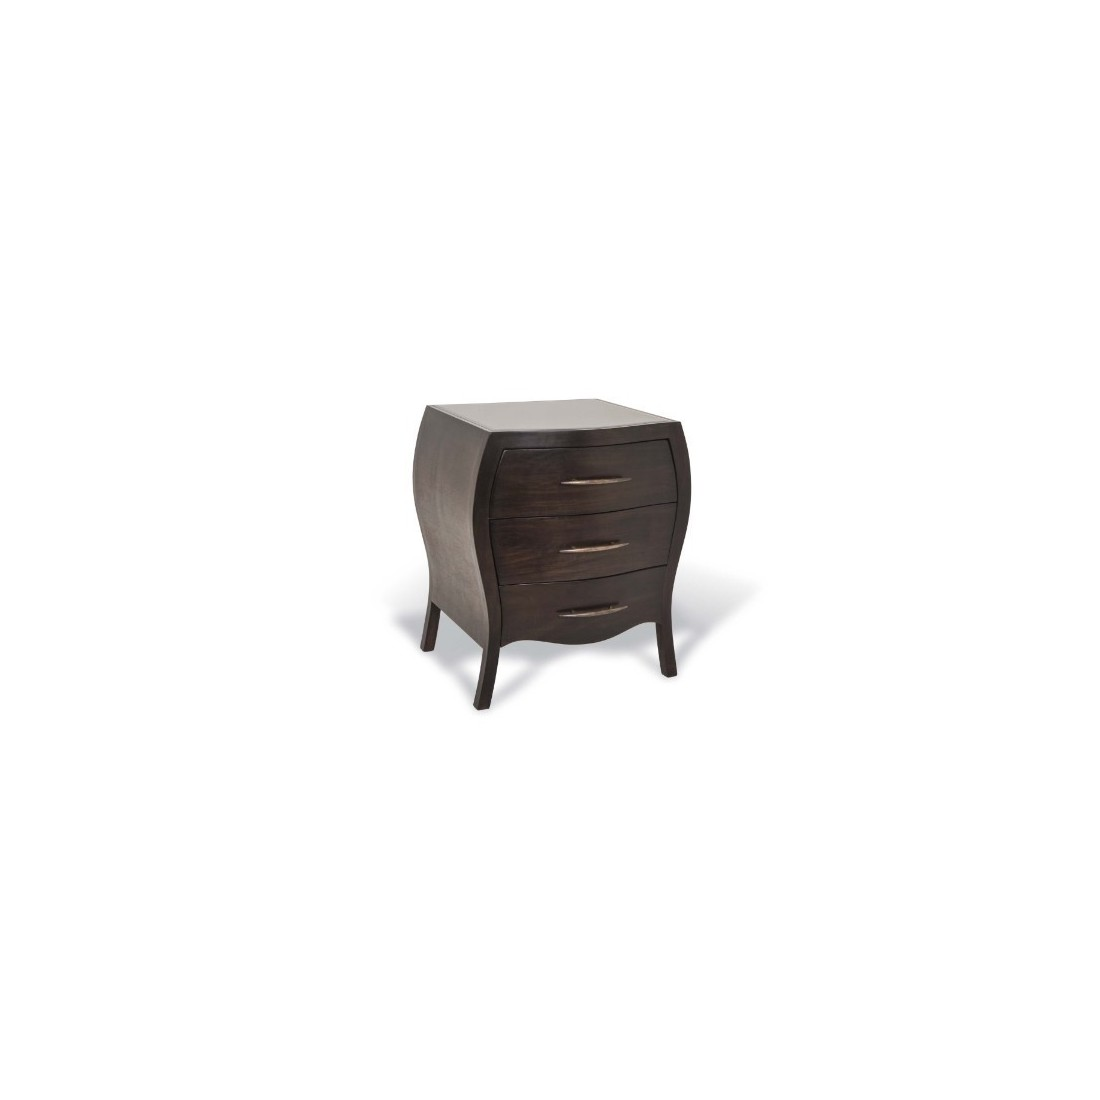 RV Astley - Varese 3 Drawer Side Table odkládací stůl